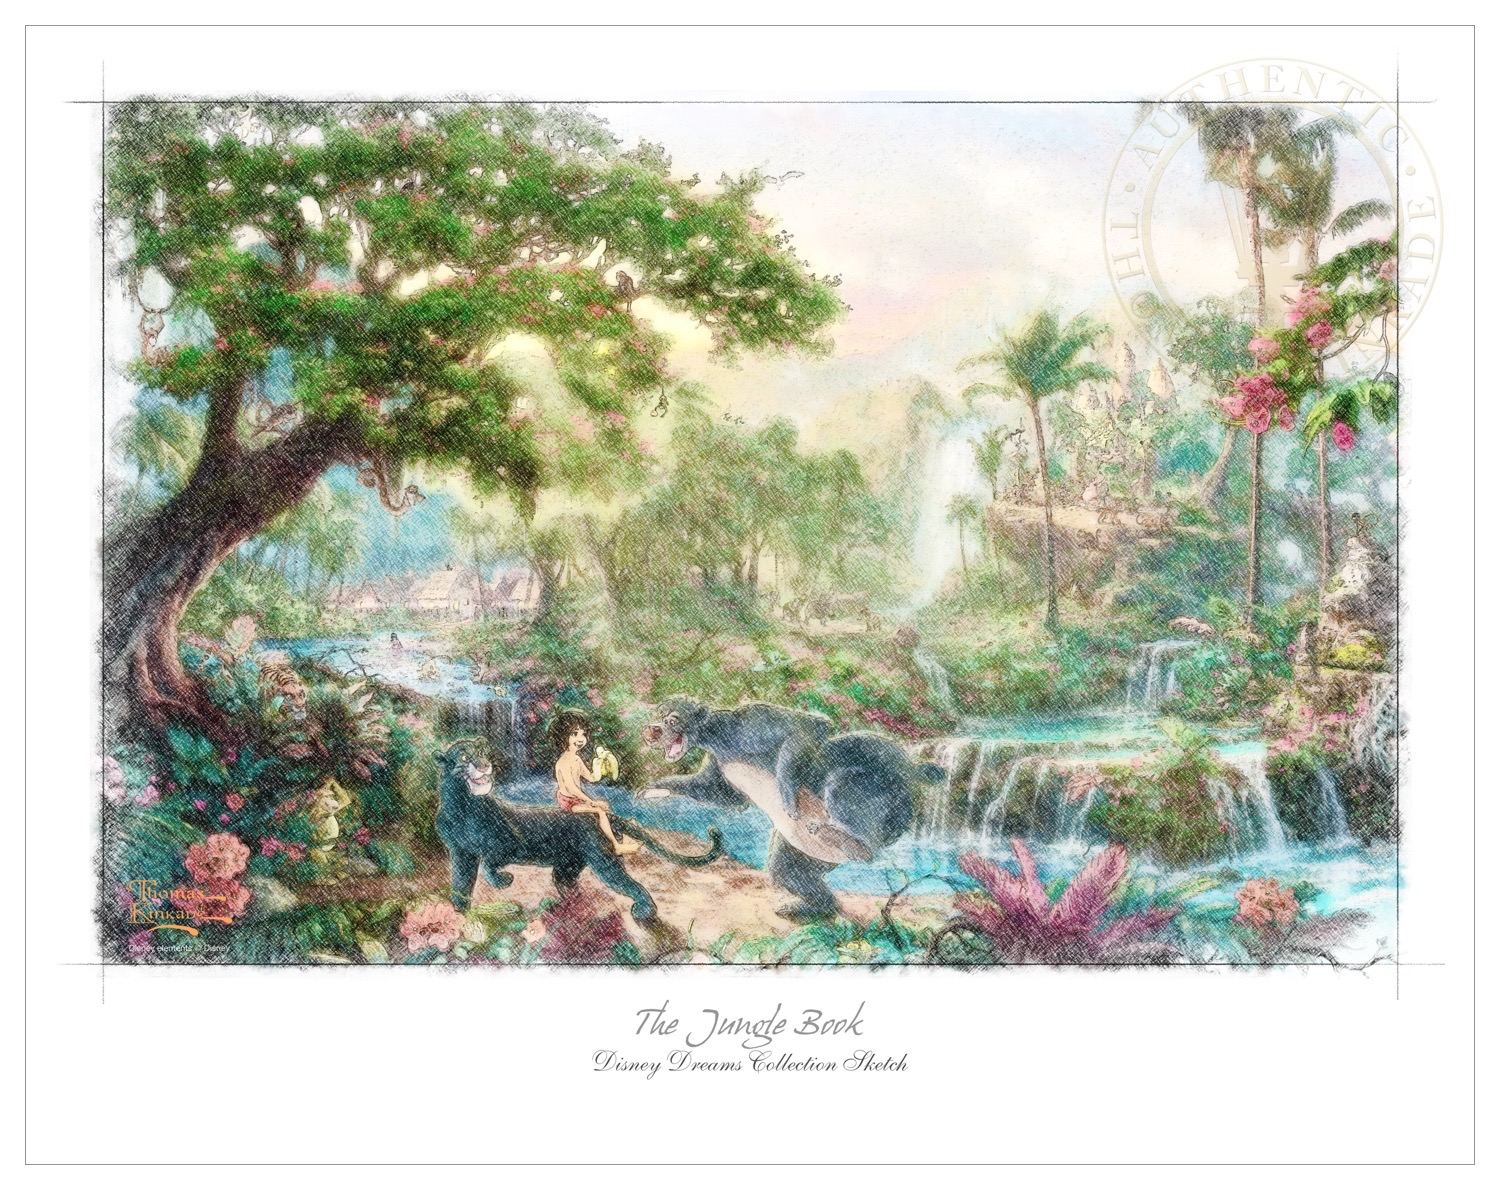 disney dreams collection � set of twelve 11� x 14